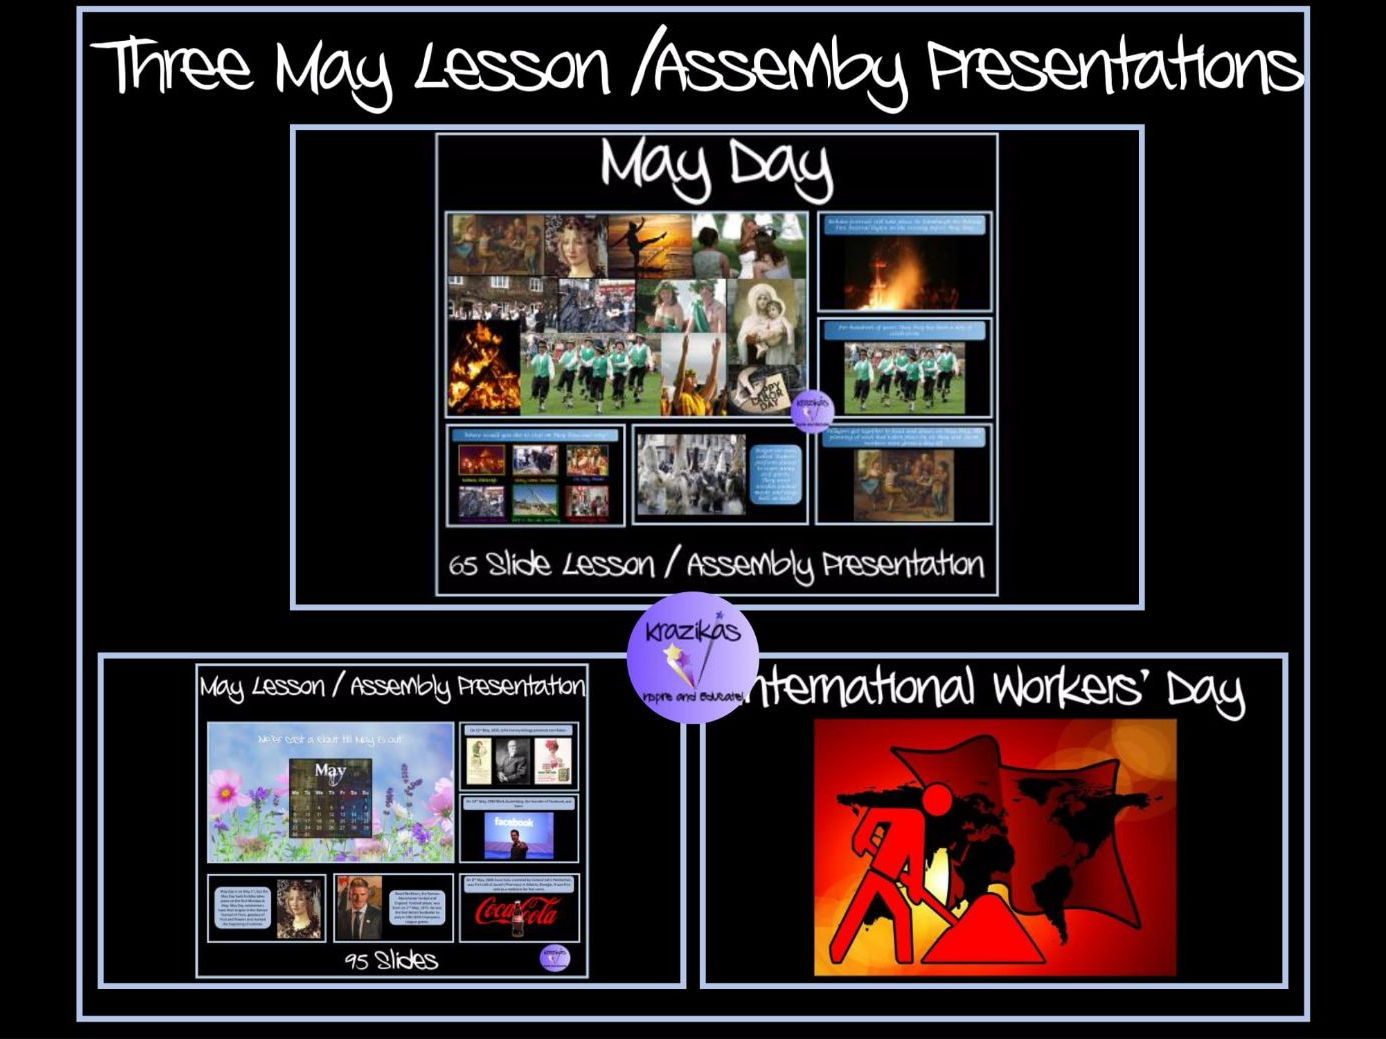 May Themed Assemblies Bundle - May Day, Month of May, International Workers' Day (Labour/Labor Day)